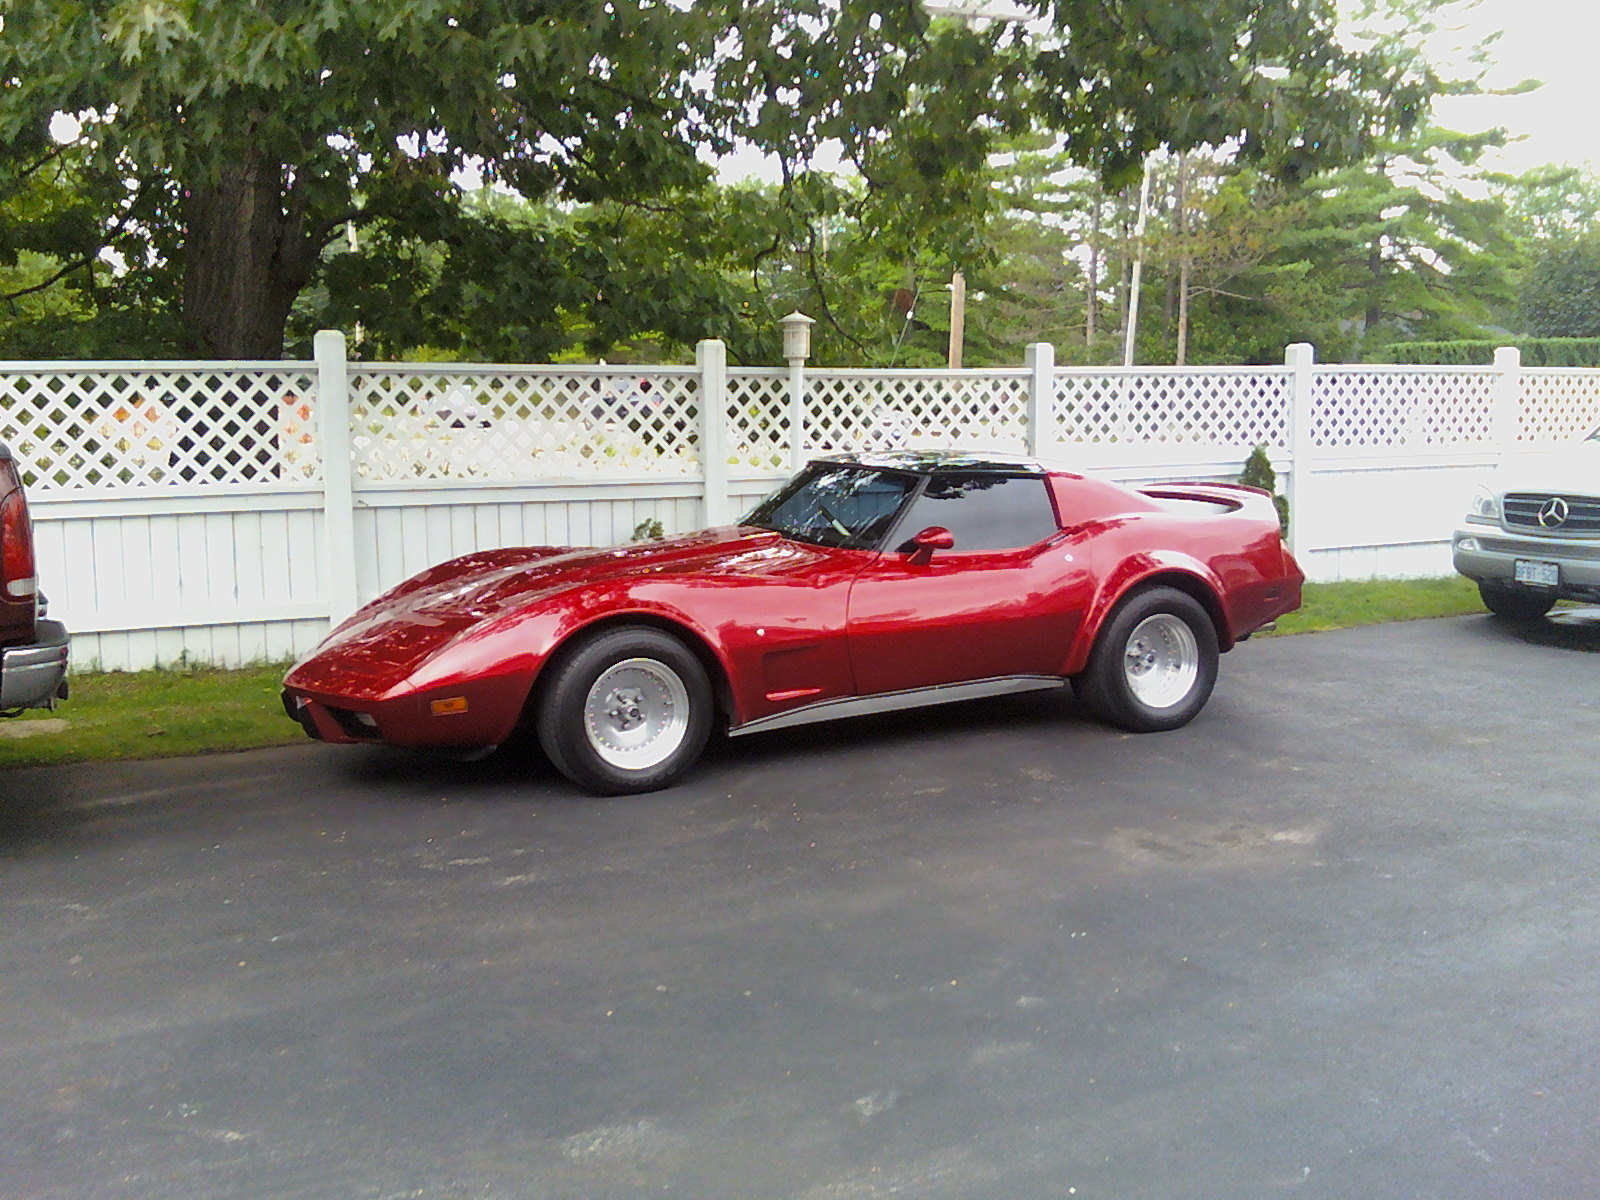 2005 Corvette For Sale >> 1978 Chevrolet Corvette - Pictures - CarGurus